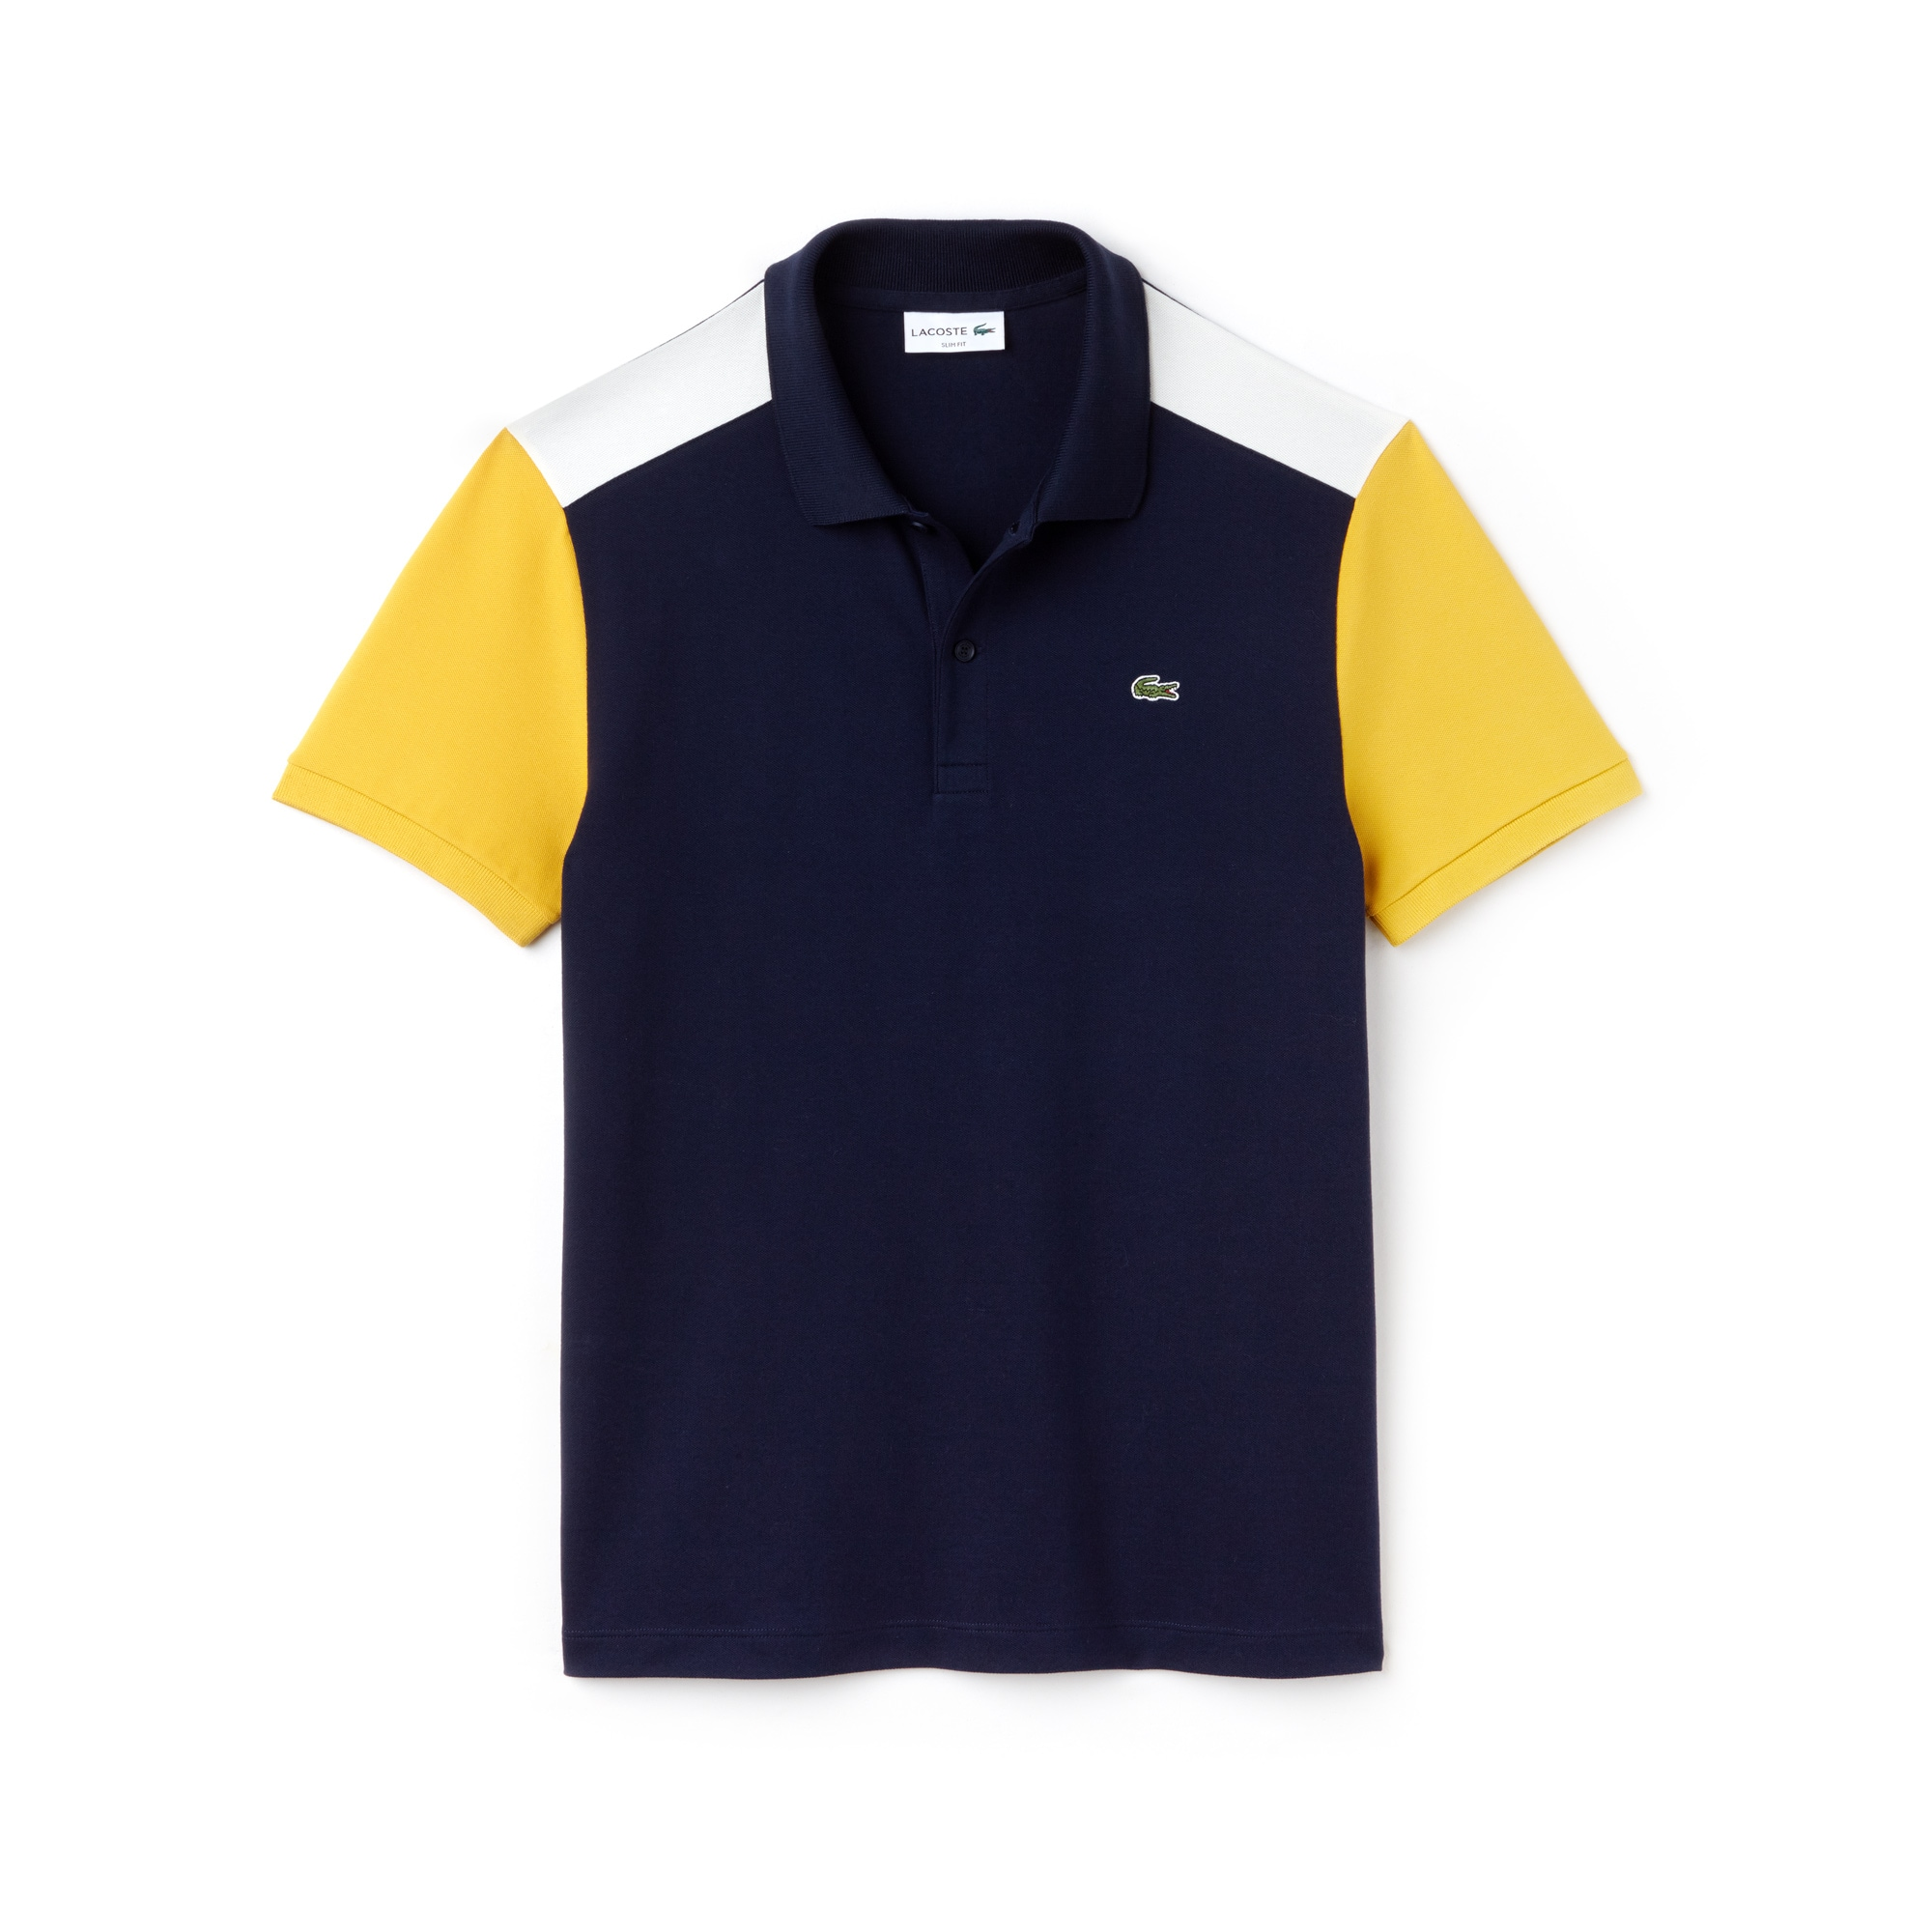 a046799f44 Polos Manches Longues Courtes Et Lacoste Polo Homme Pq17BB